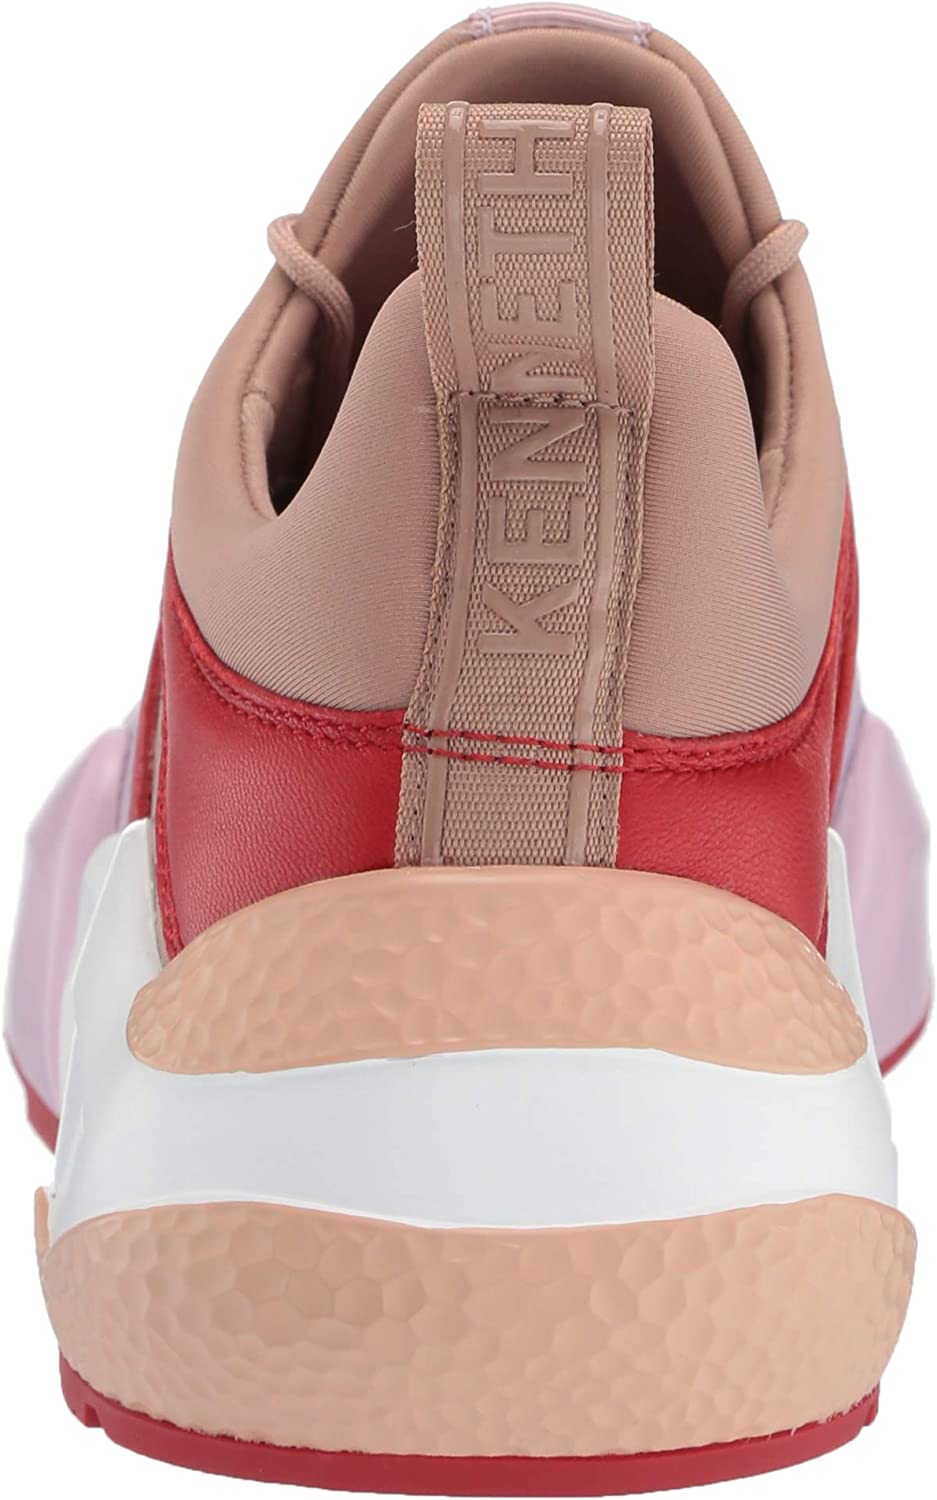 Kenneth Cole New York Womens Maddox Jogger Sneaker